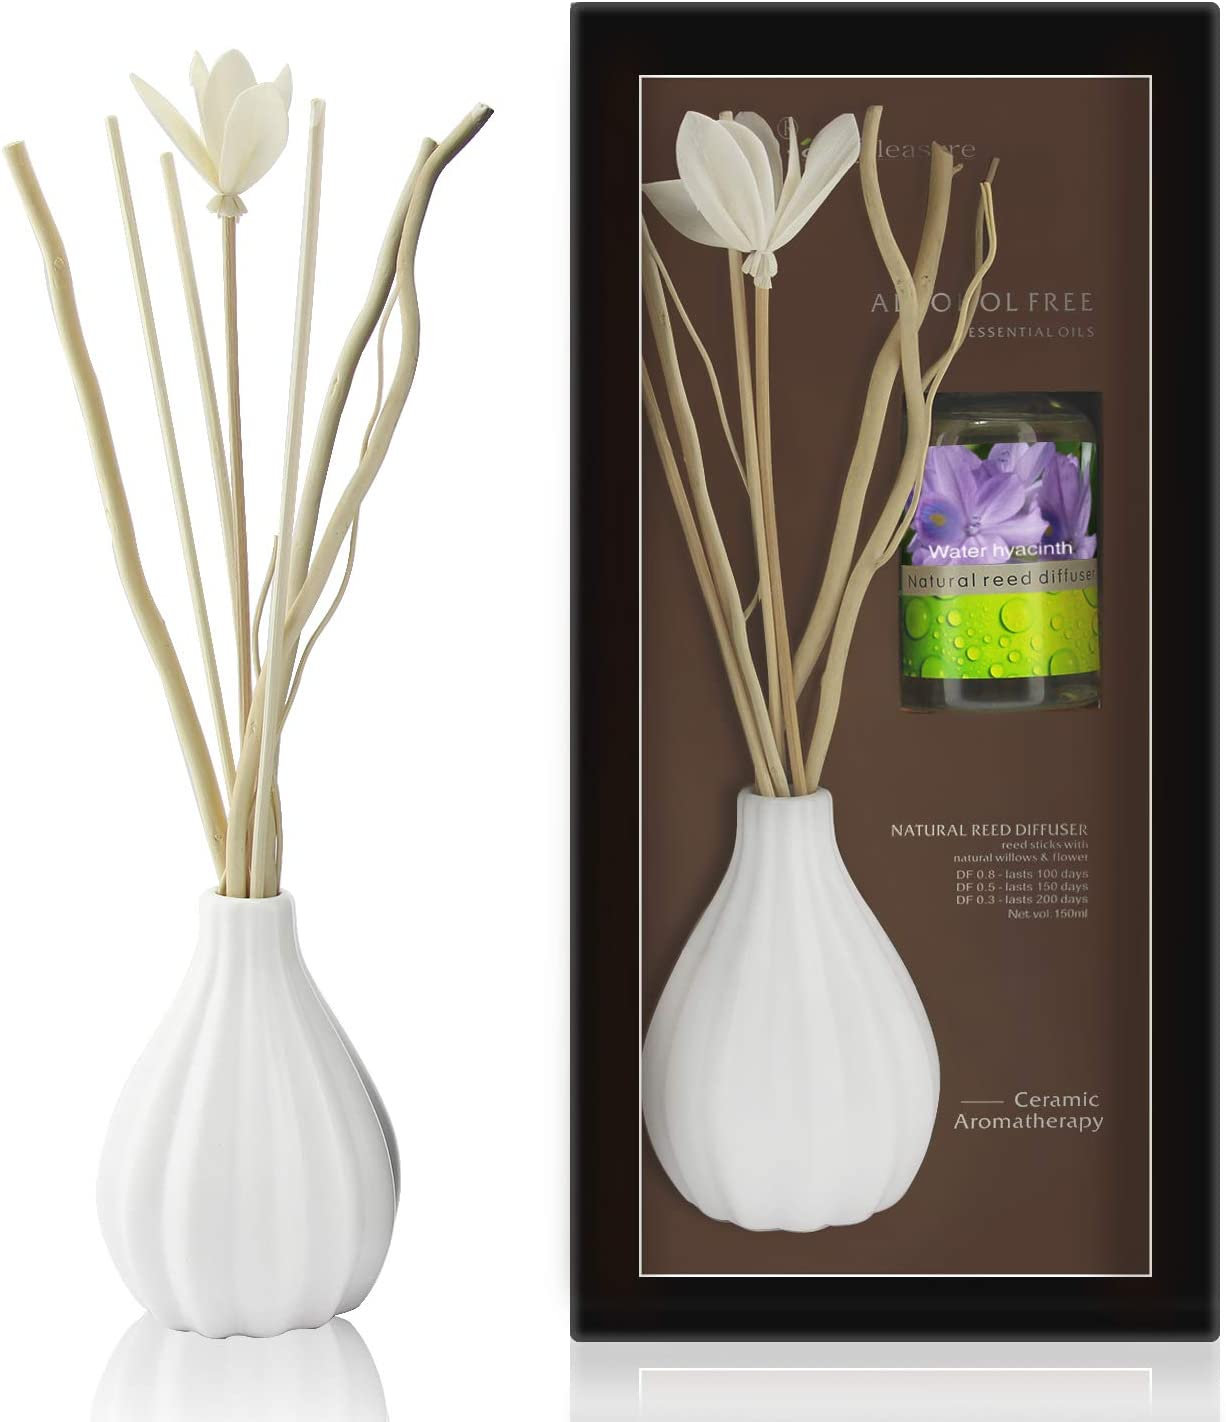 ap airpleasure Dried Flower Reed Diffuser Set, Natural Sticks, Elegant Ceramic Bottle, Aromatherapy Oil Set, Home Fragrance & Decorative Diffuser (WaterHyacinth)